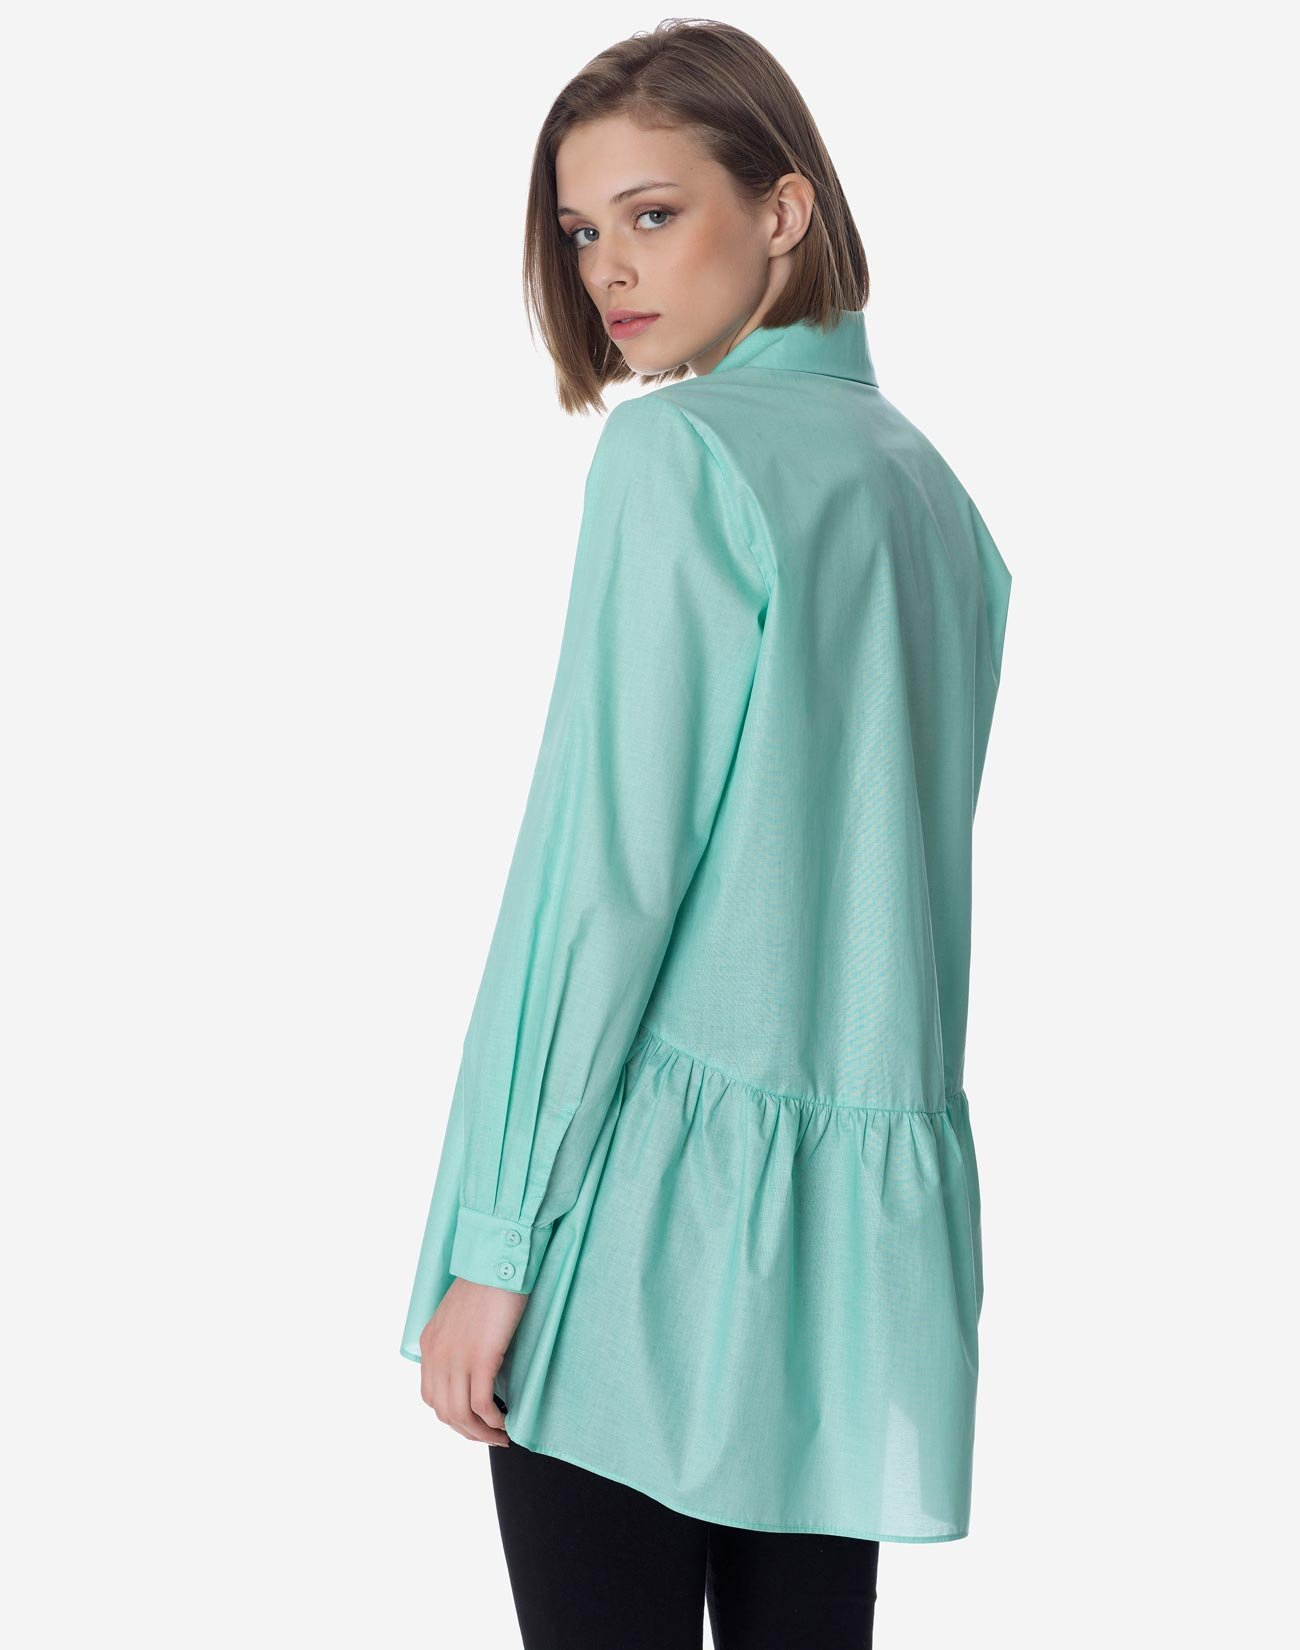 Shirt with ruffle hem